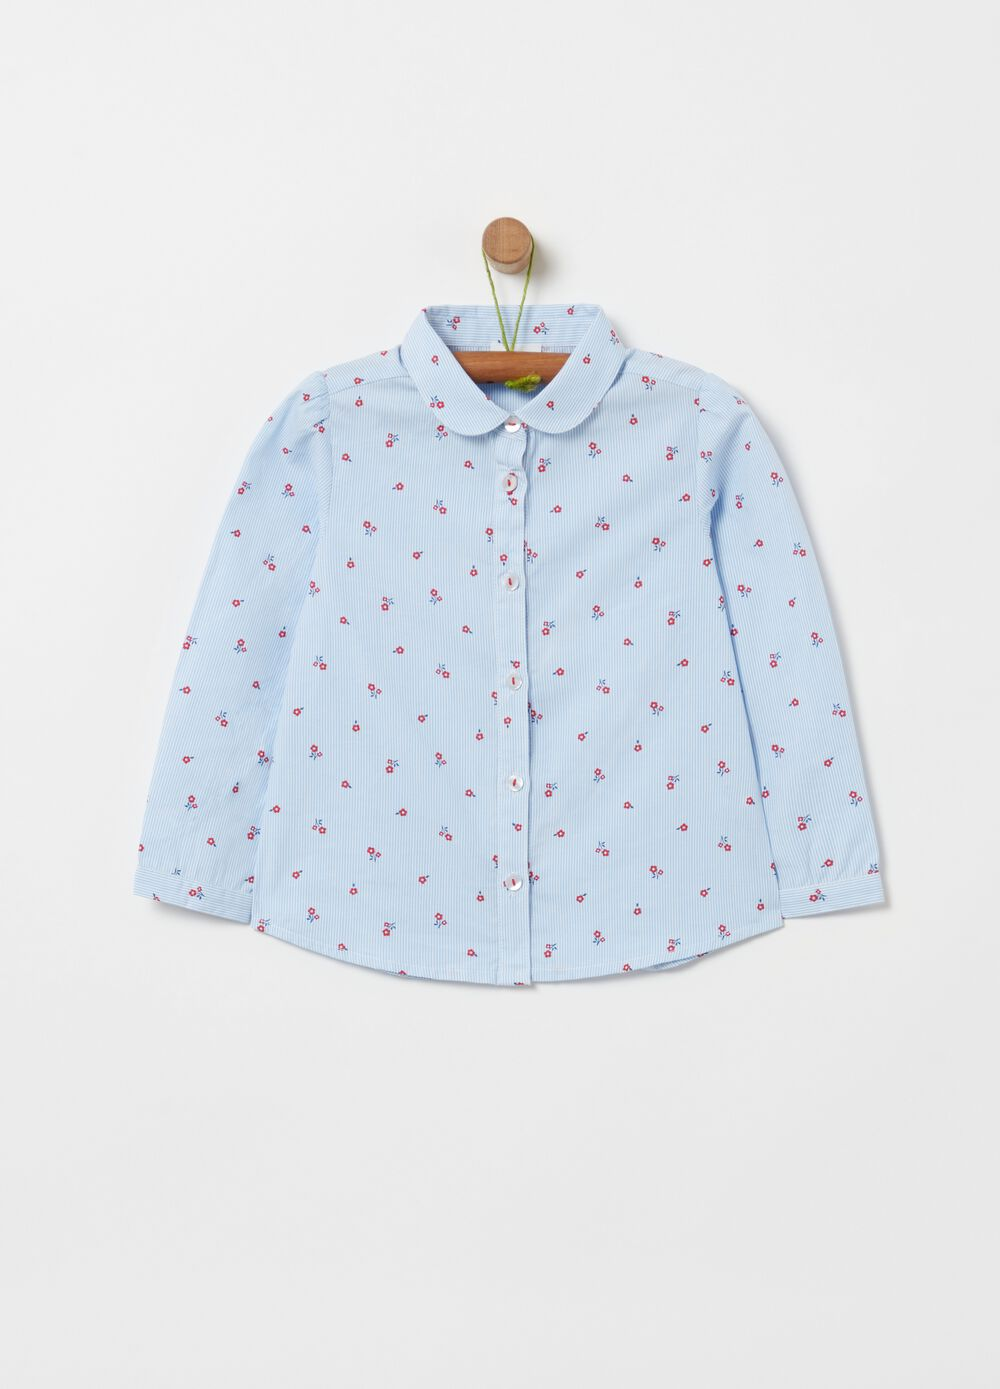 100% organic cotton blouse with pattern